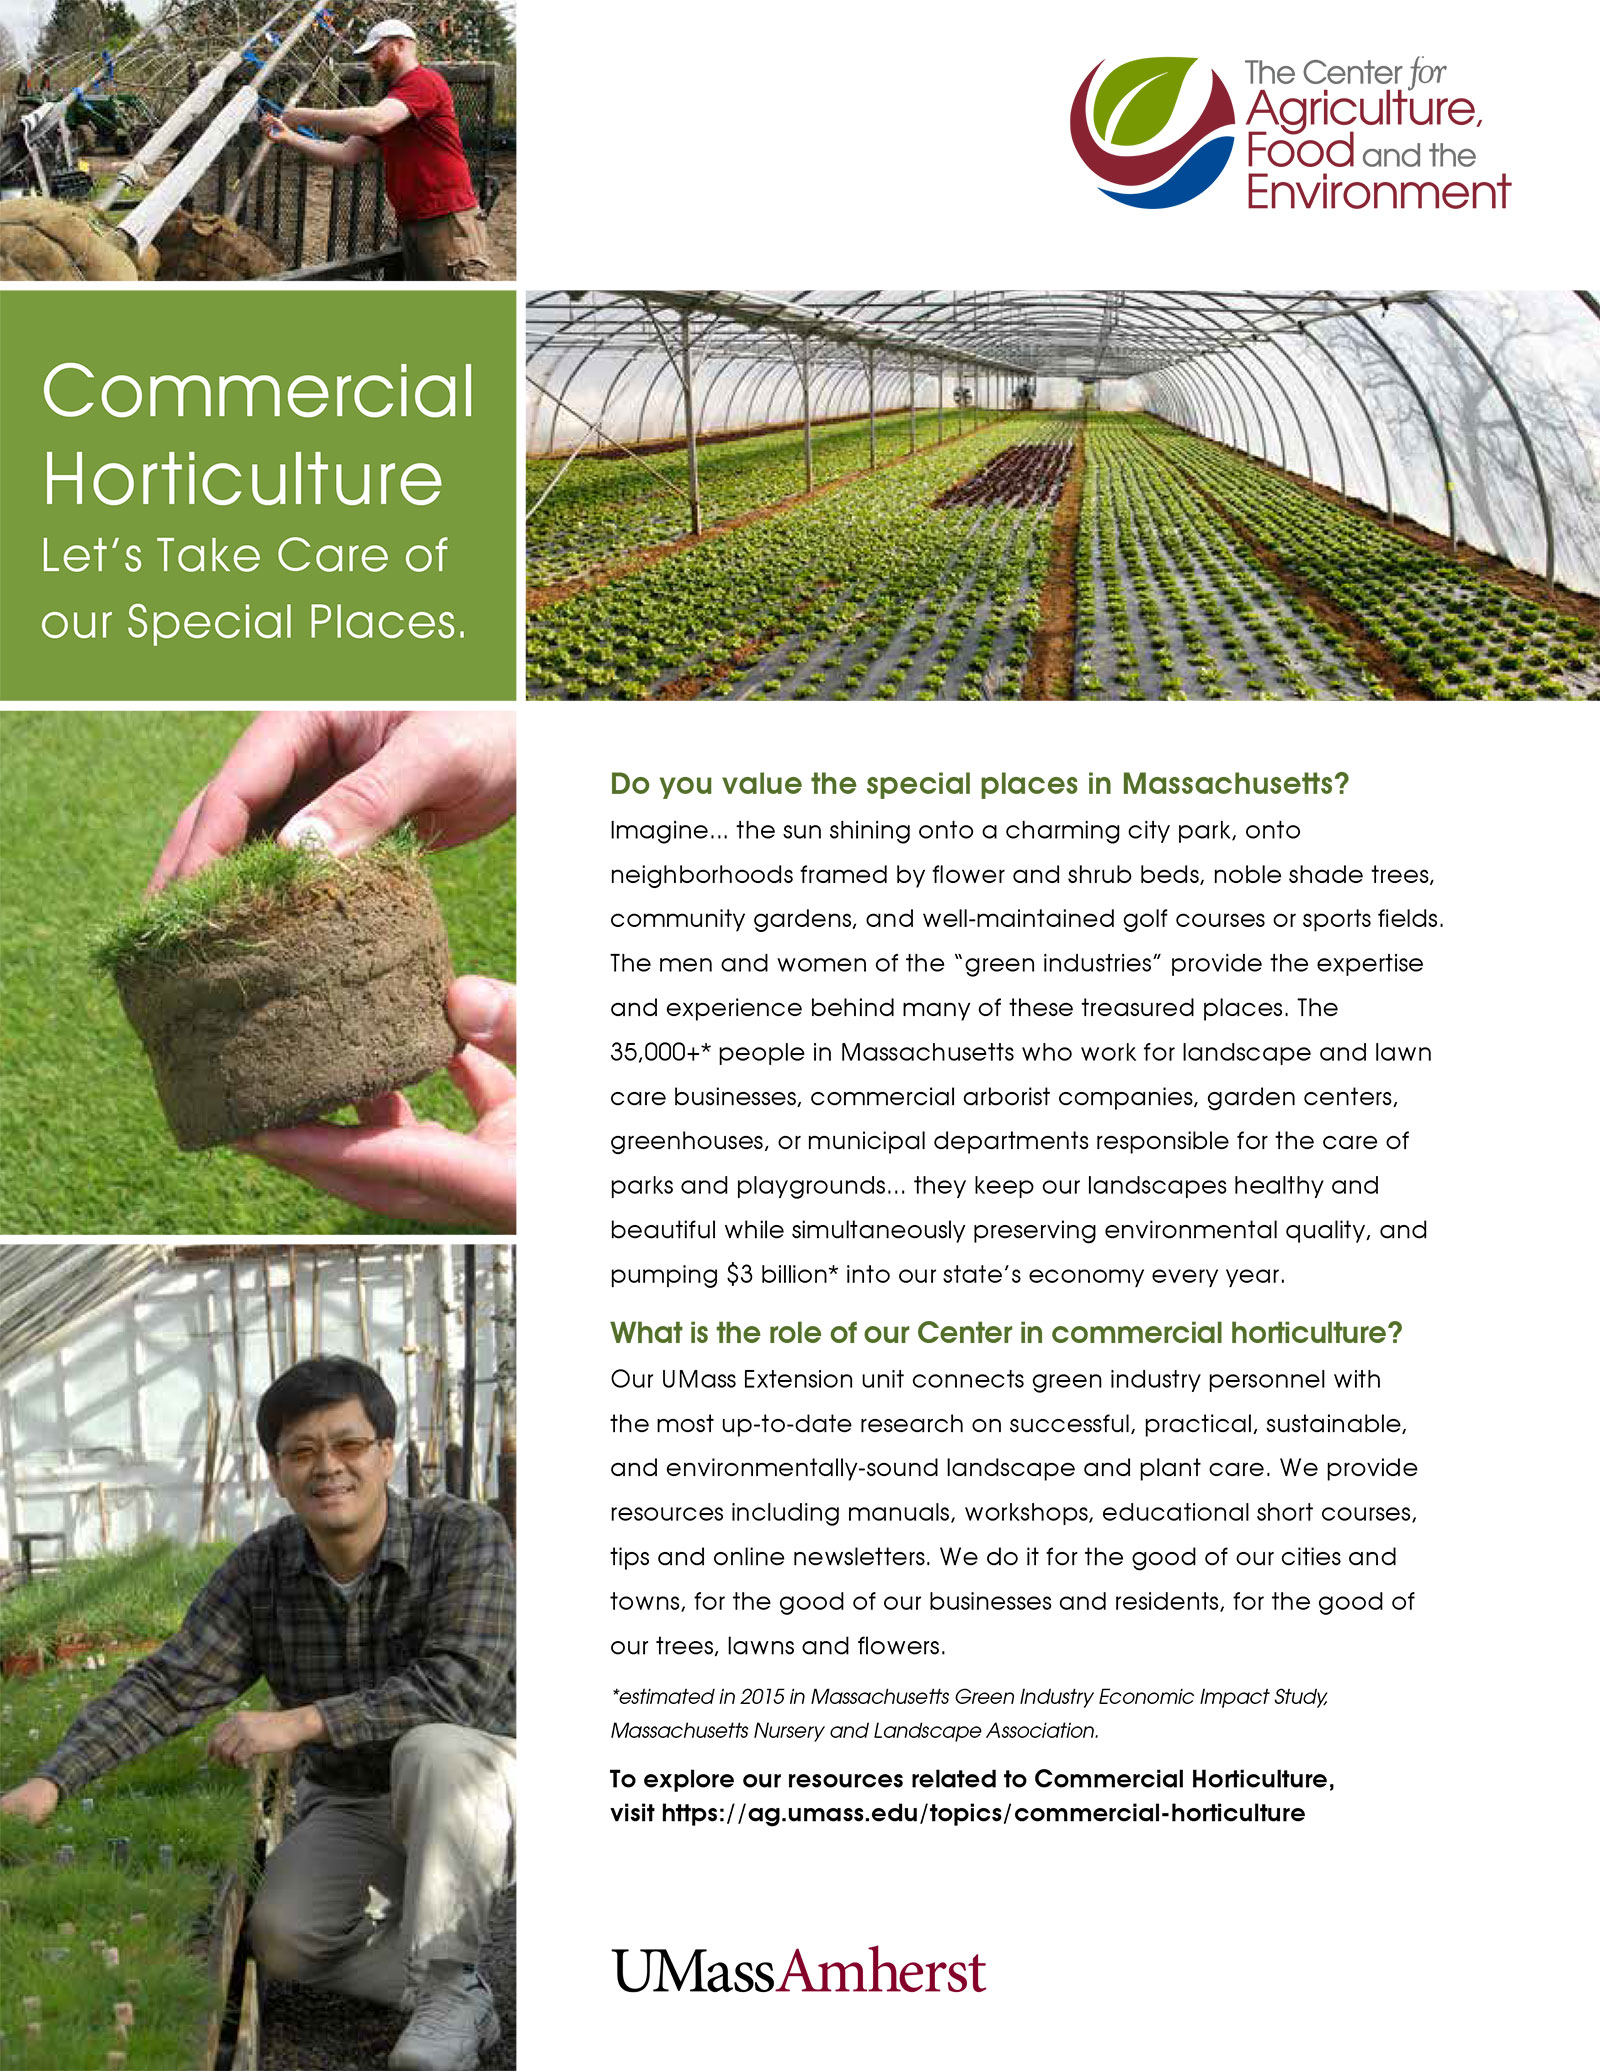 Commercial Horticulture insert for CAFE promotional material